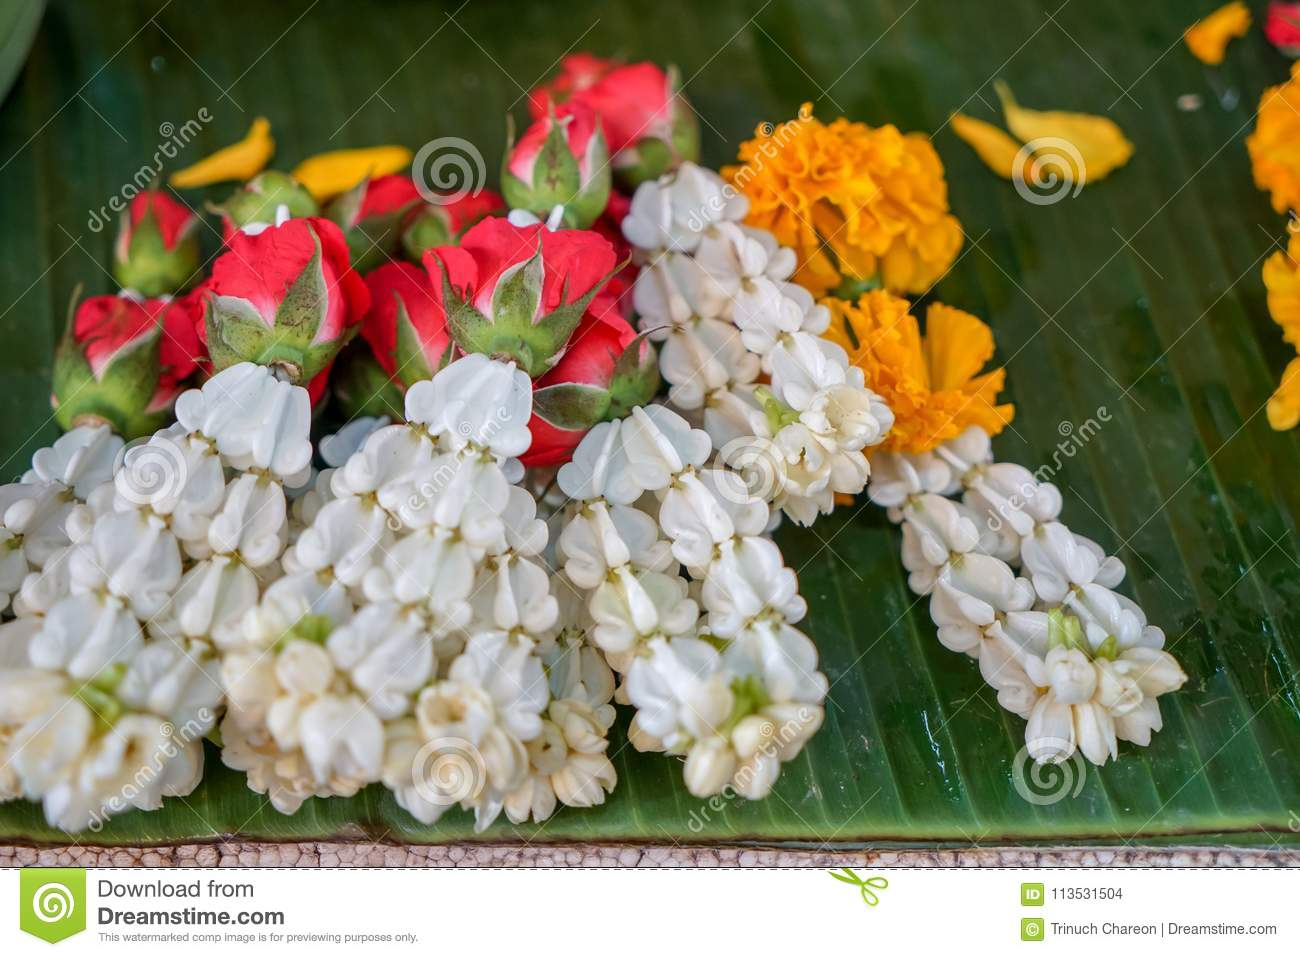 Fresh Thai Style Flower Garlands Made Of White Jasmine Crown Flower